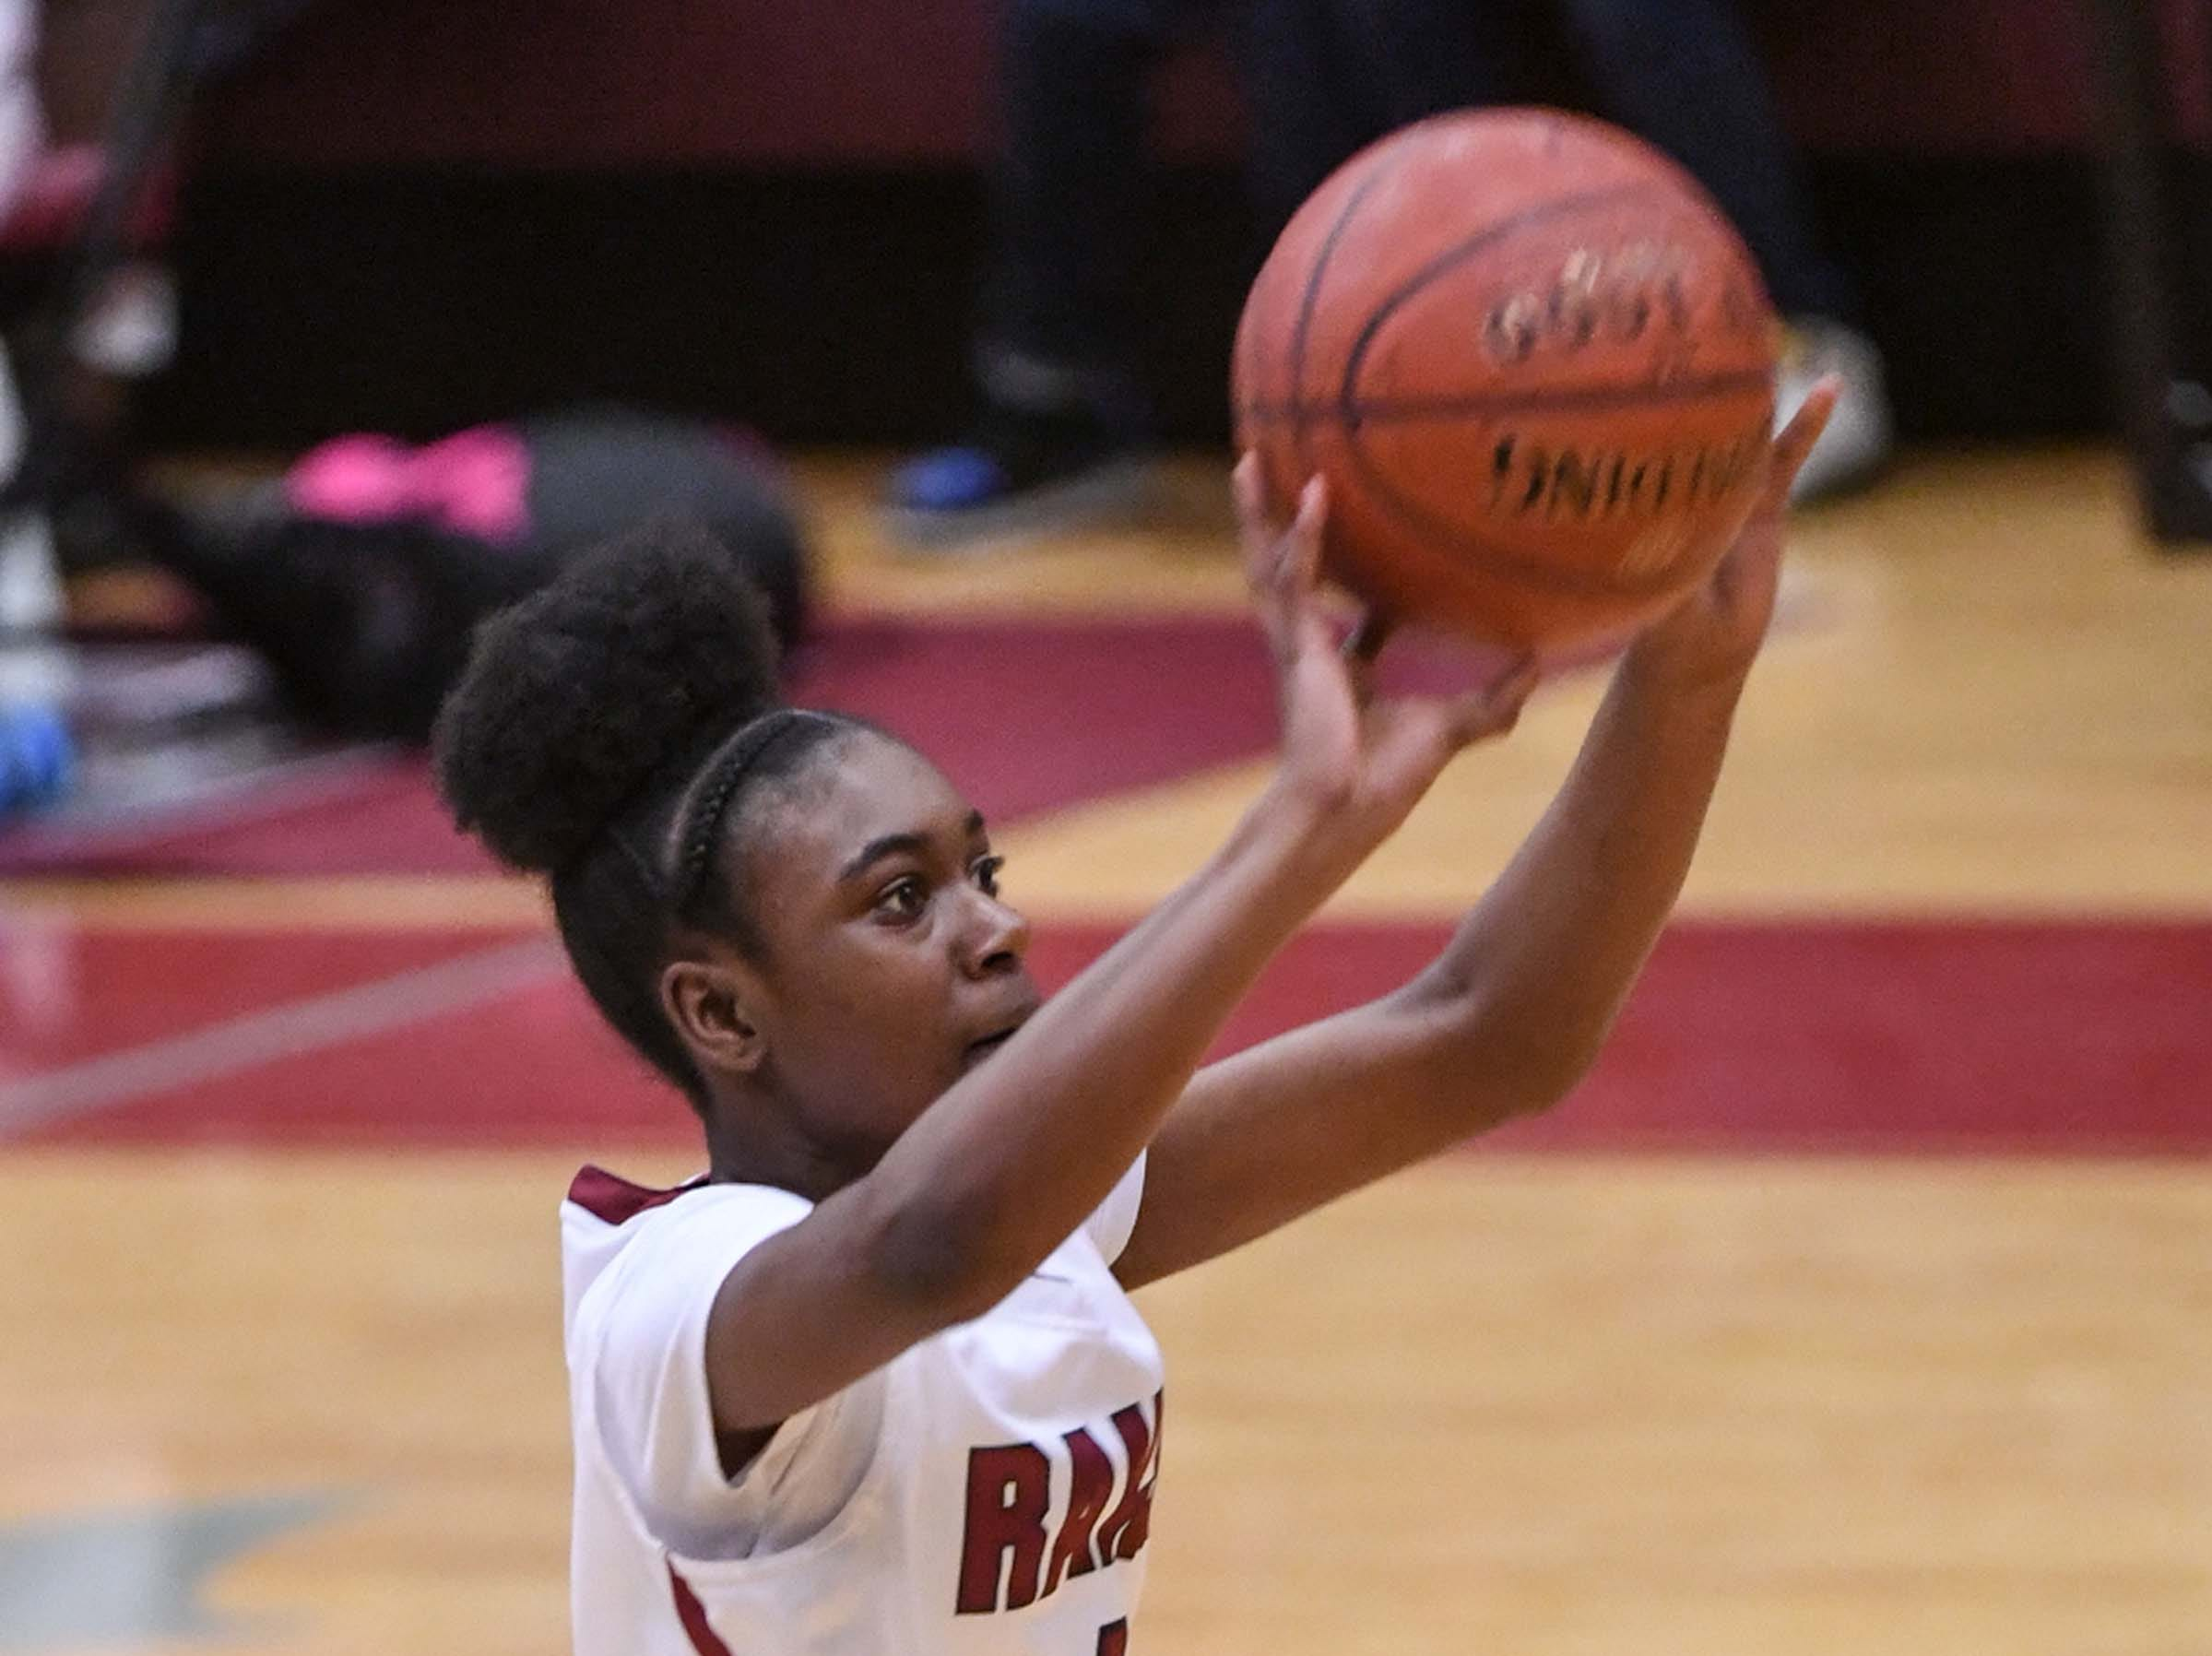 Westside freshman Aziyah Bell(4) shoots during the first quarter at Westside High School in Anderson on Friday.